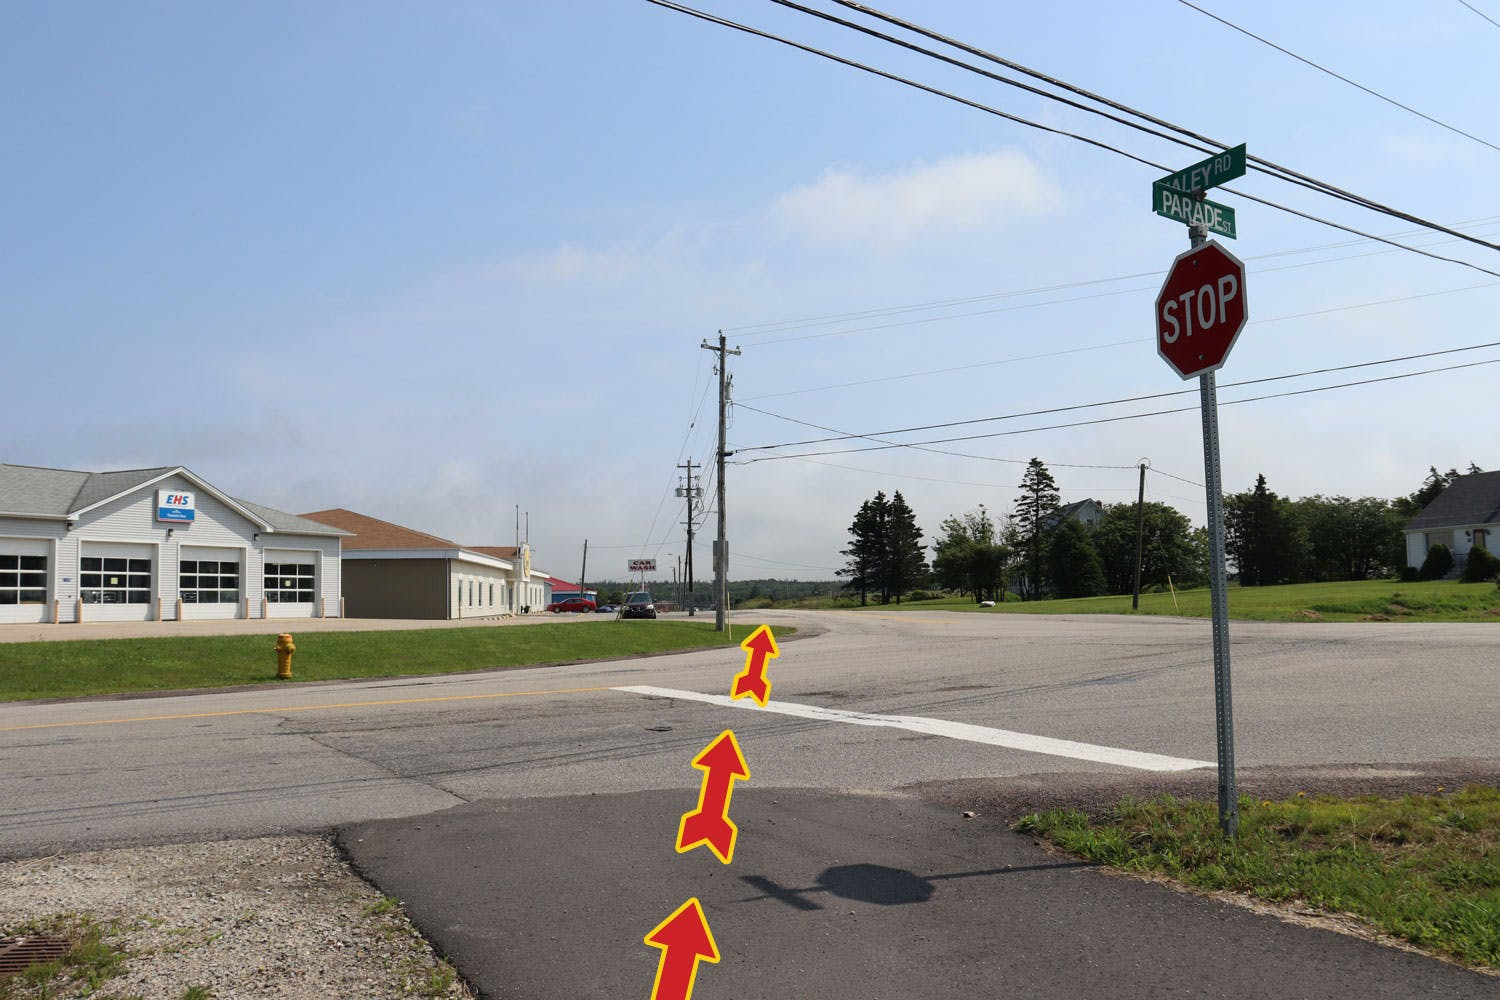 Asphalt multi-use trail will be added between Starrs Road and Parade Street on Haley Road